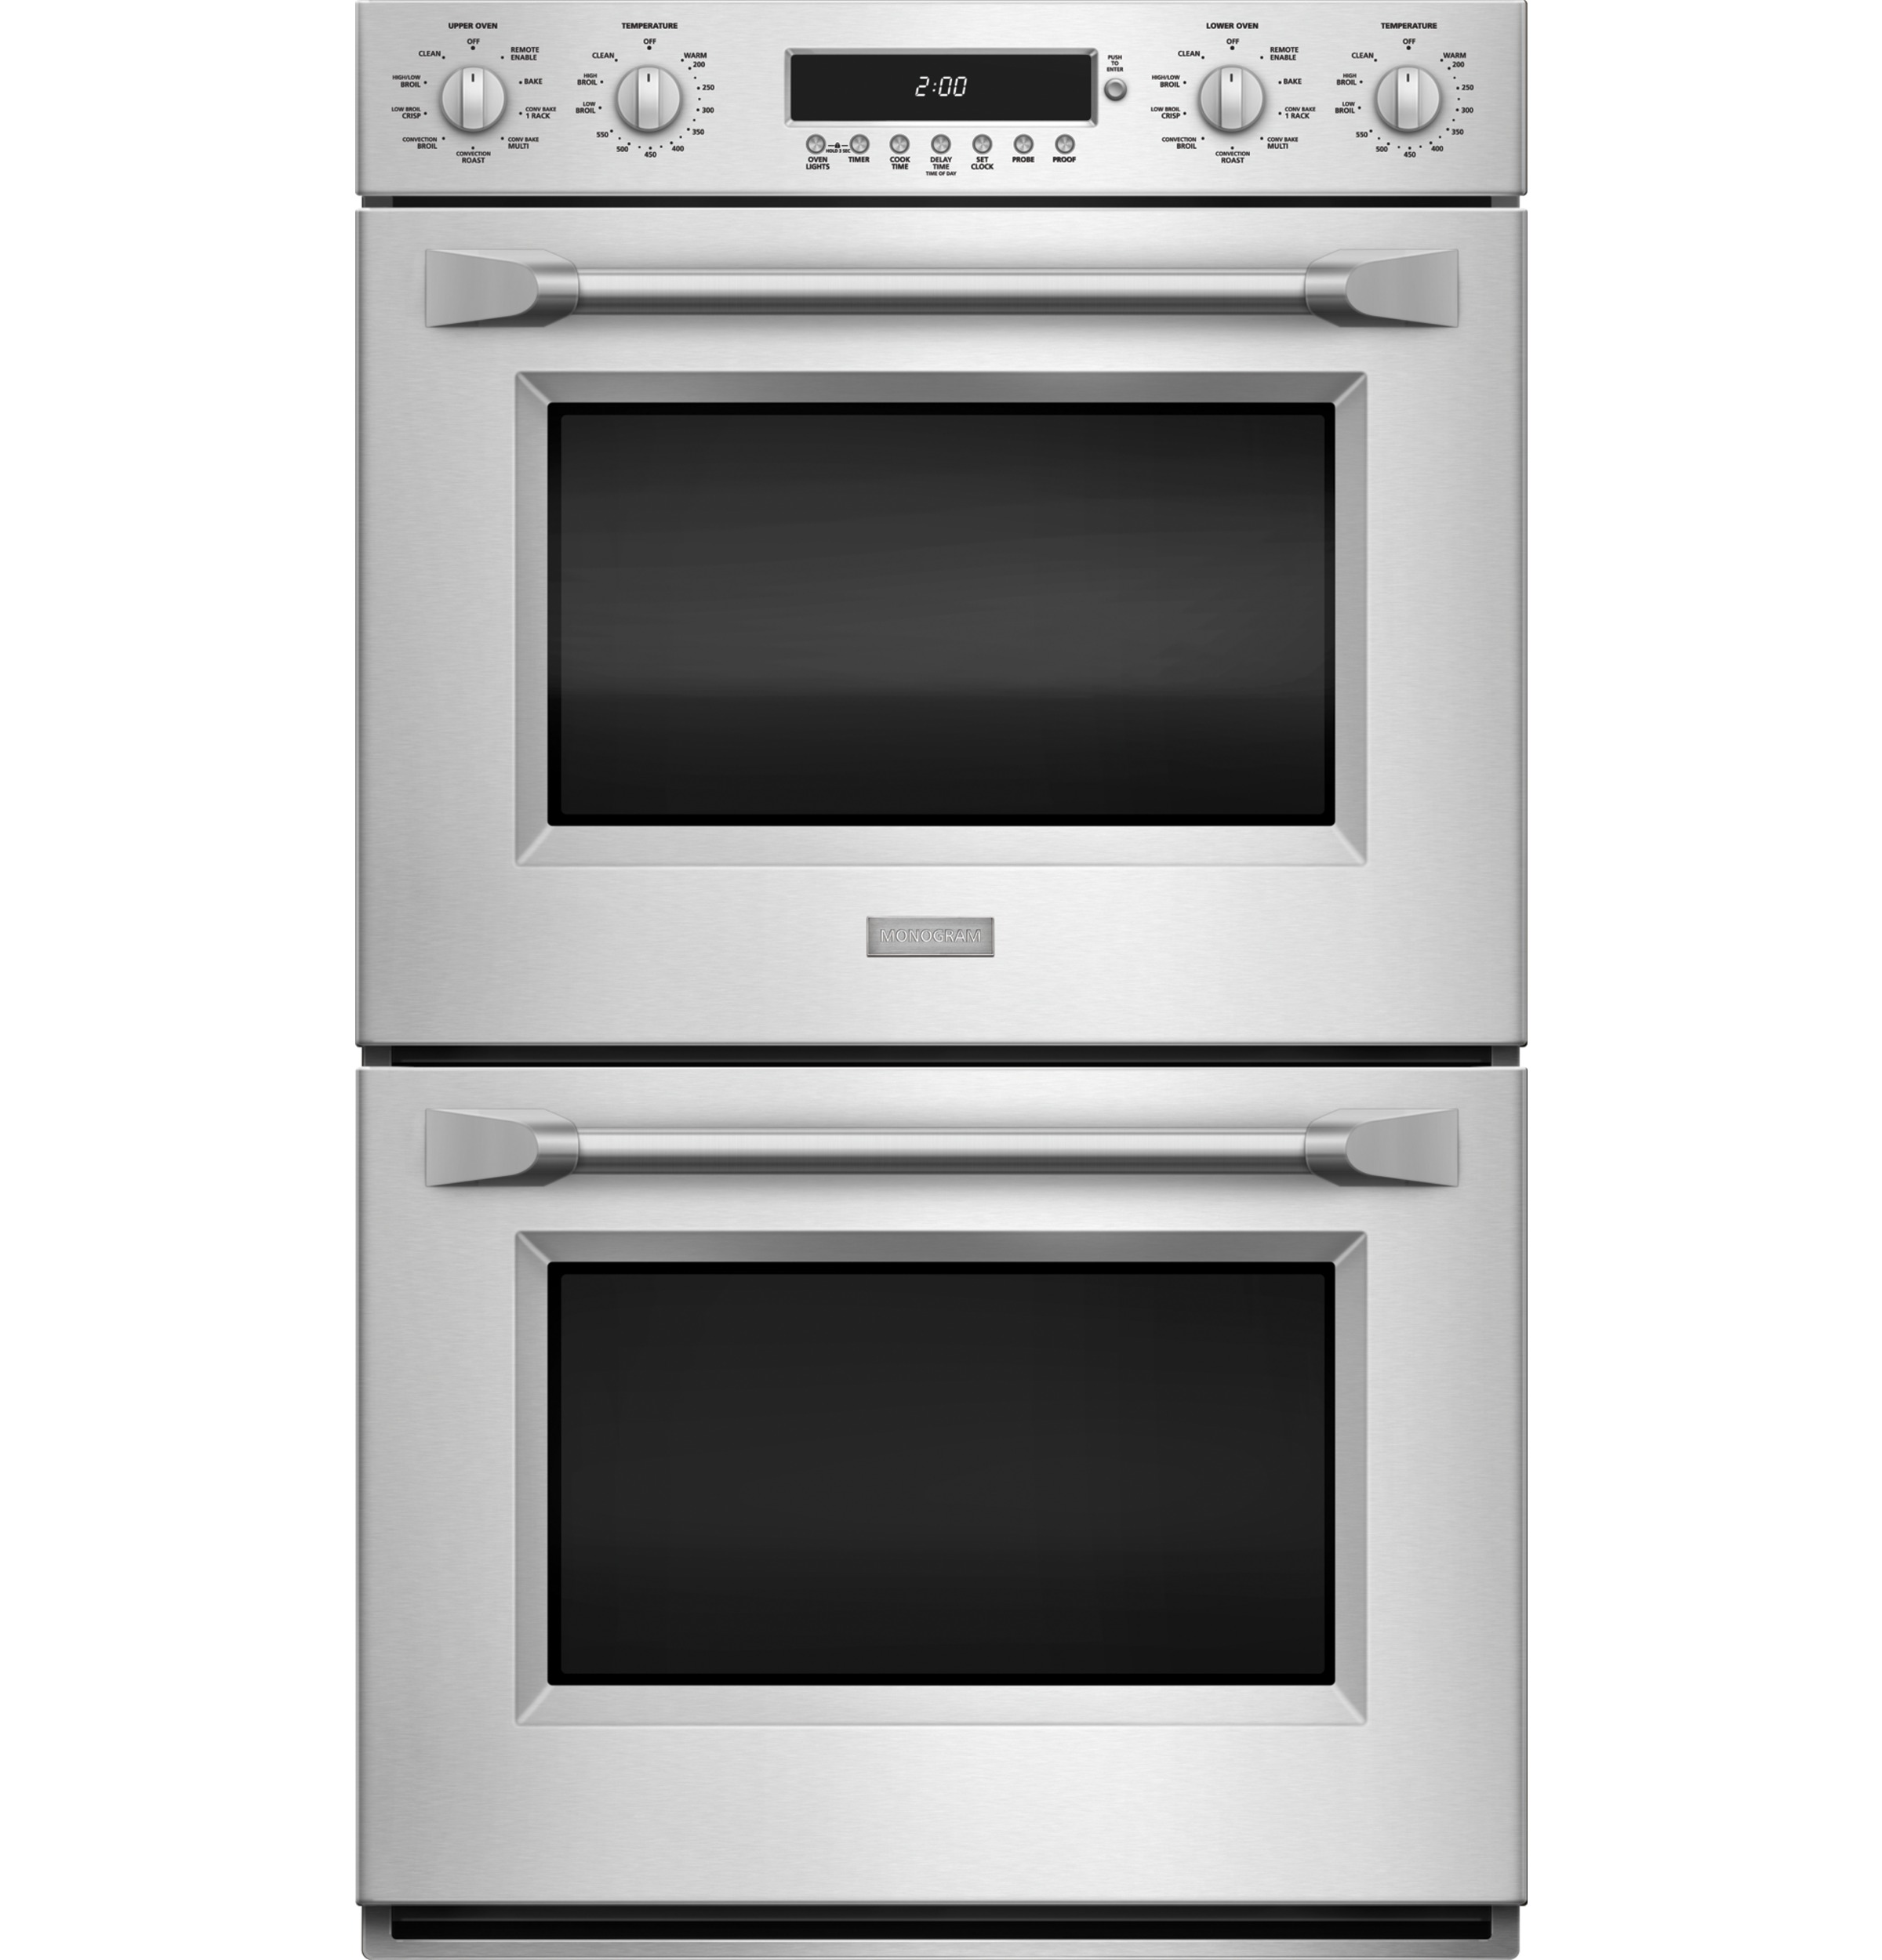 Monogram 30 Professional Electronic Convection Double